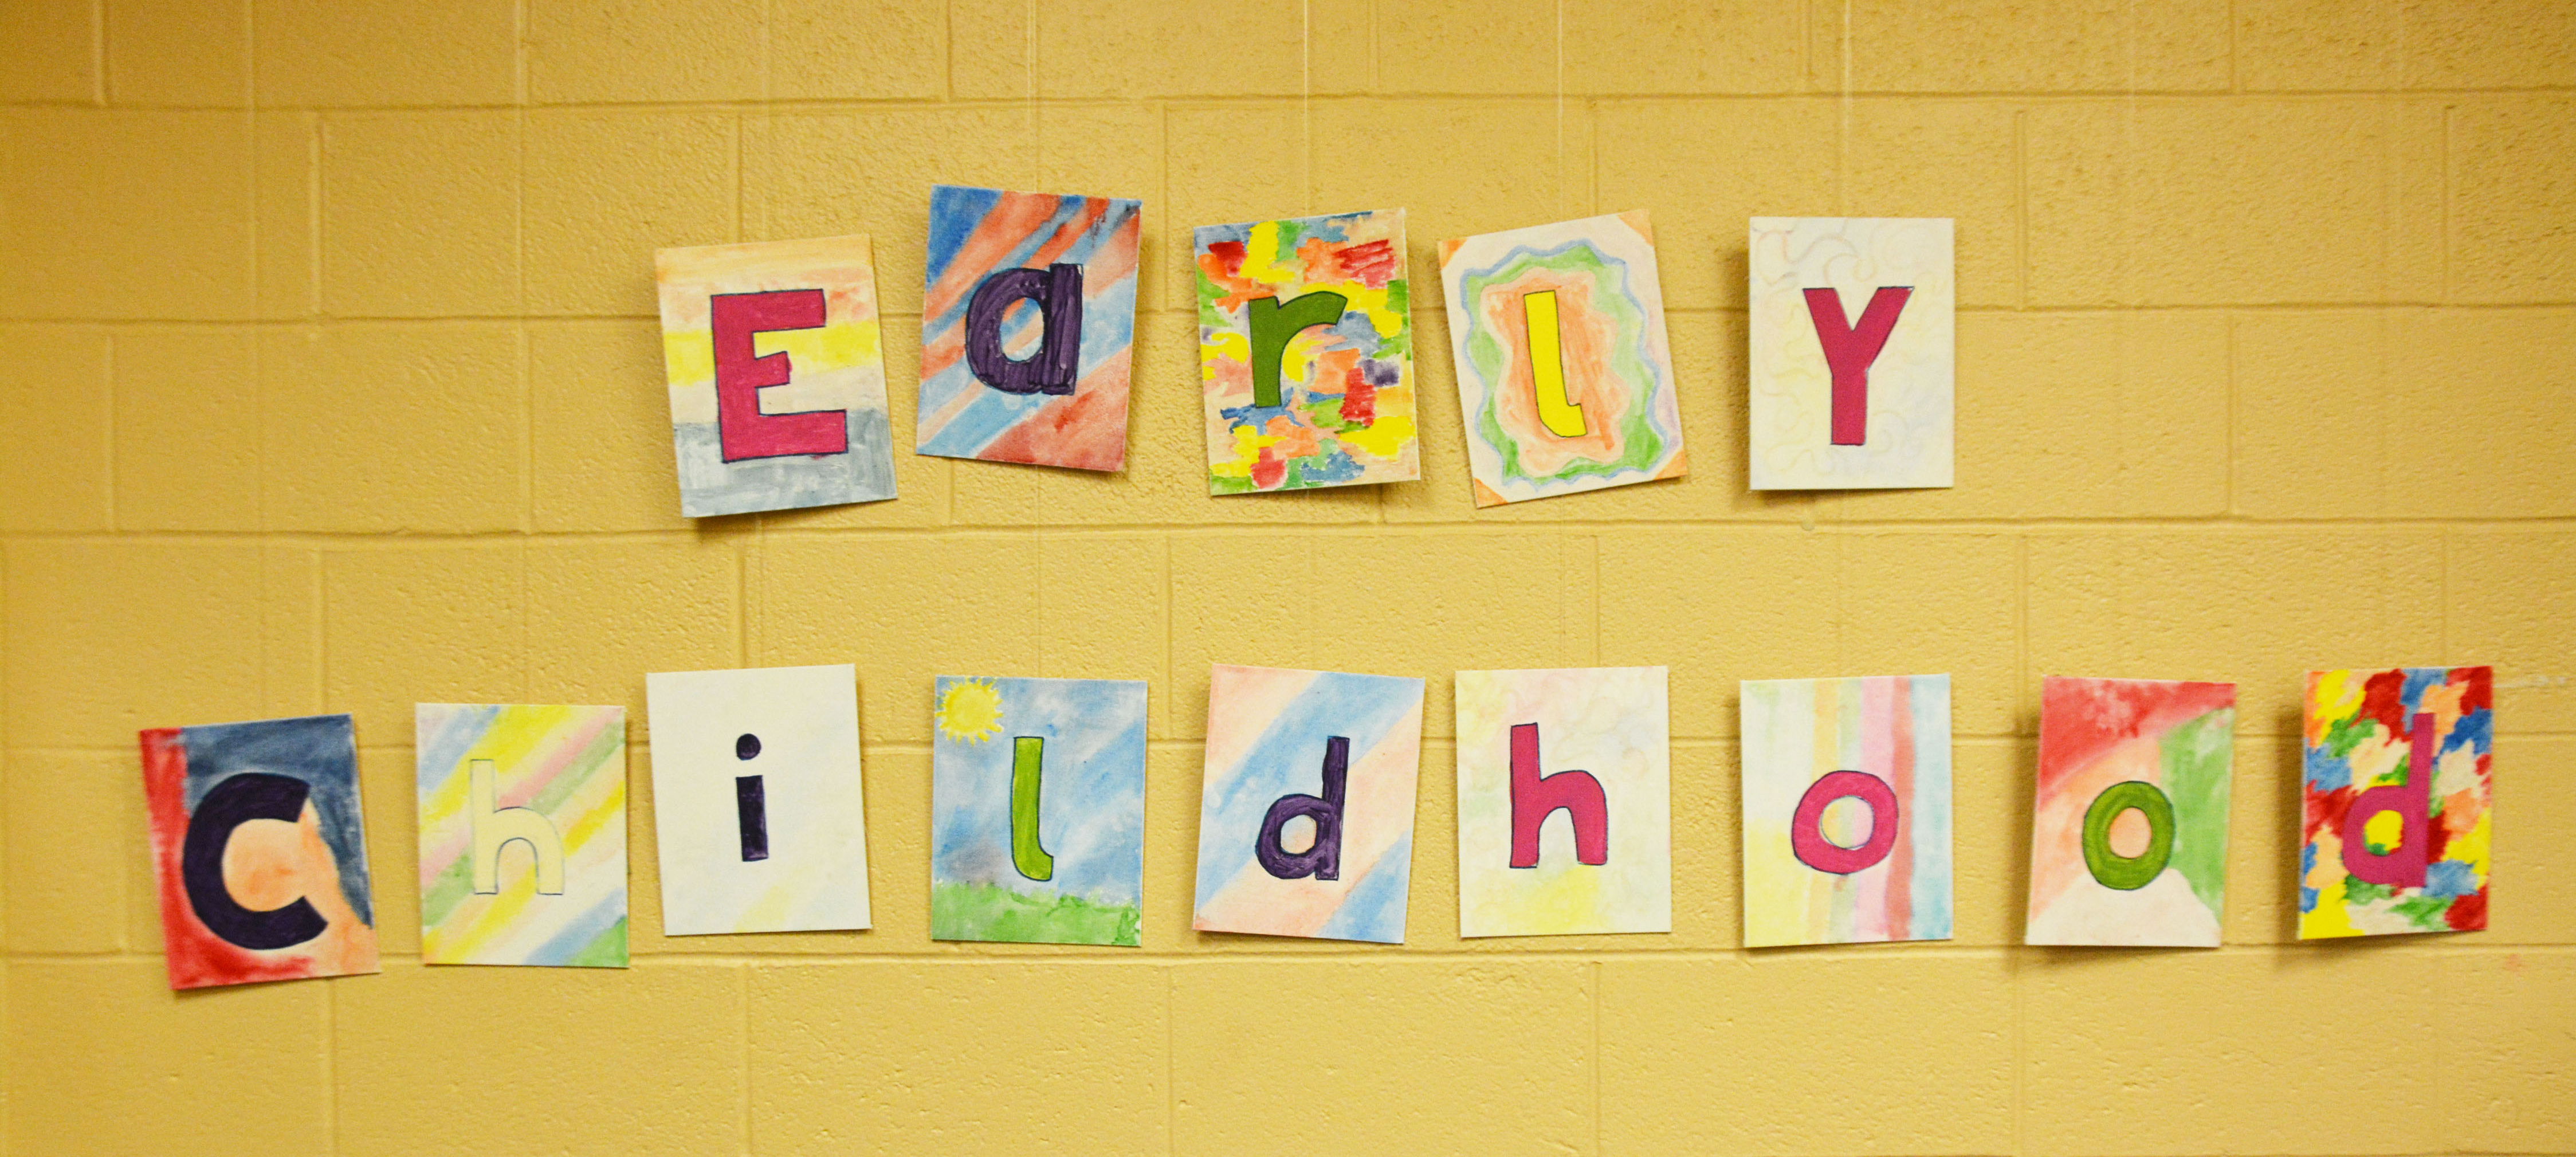 Early Childhood Education and Care Sign